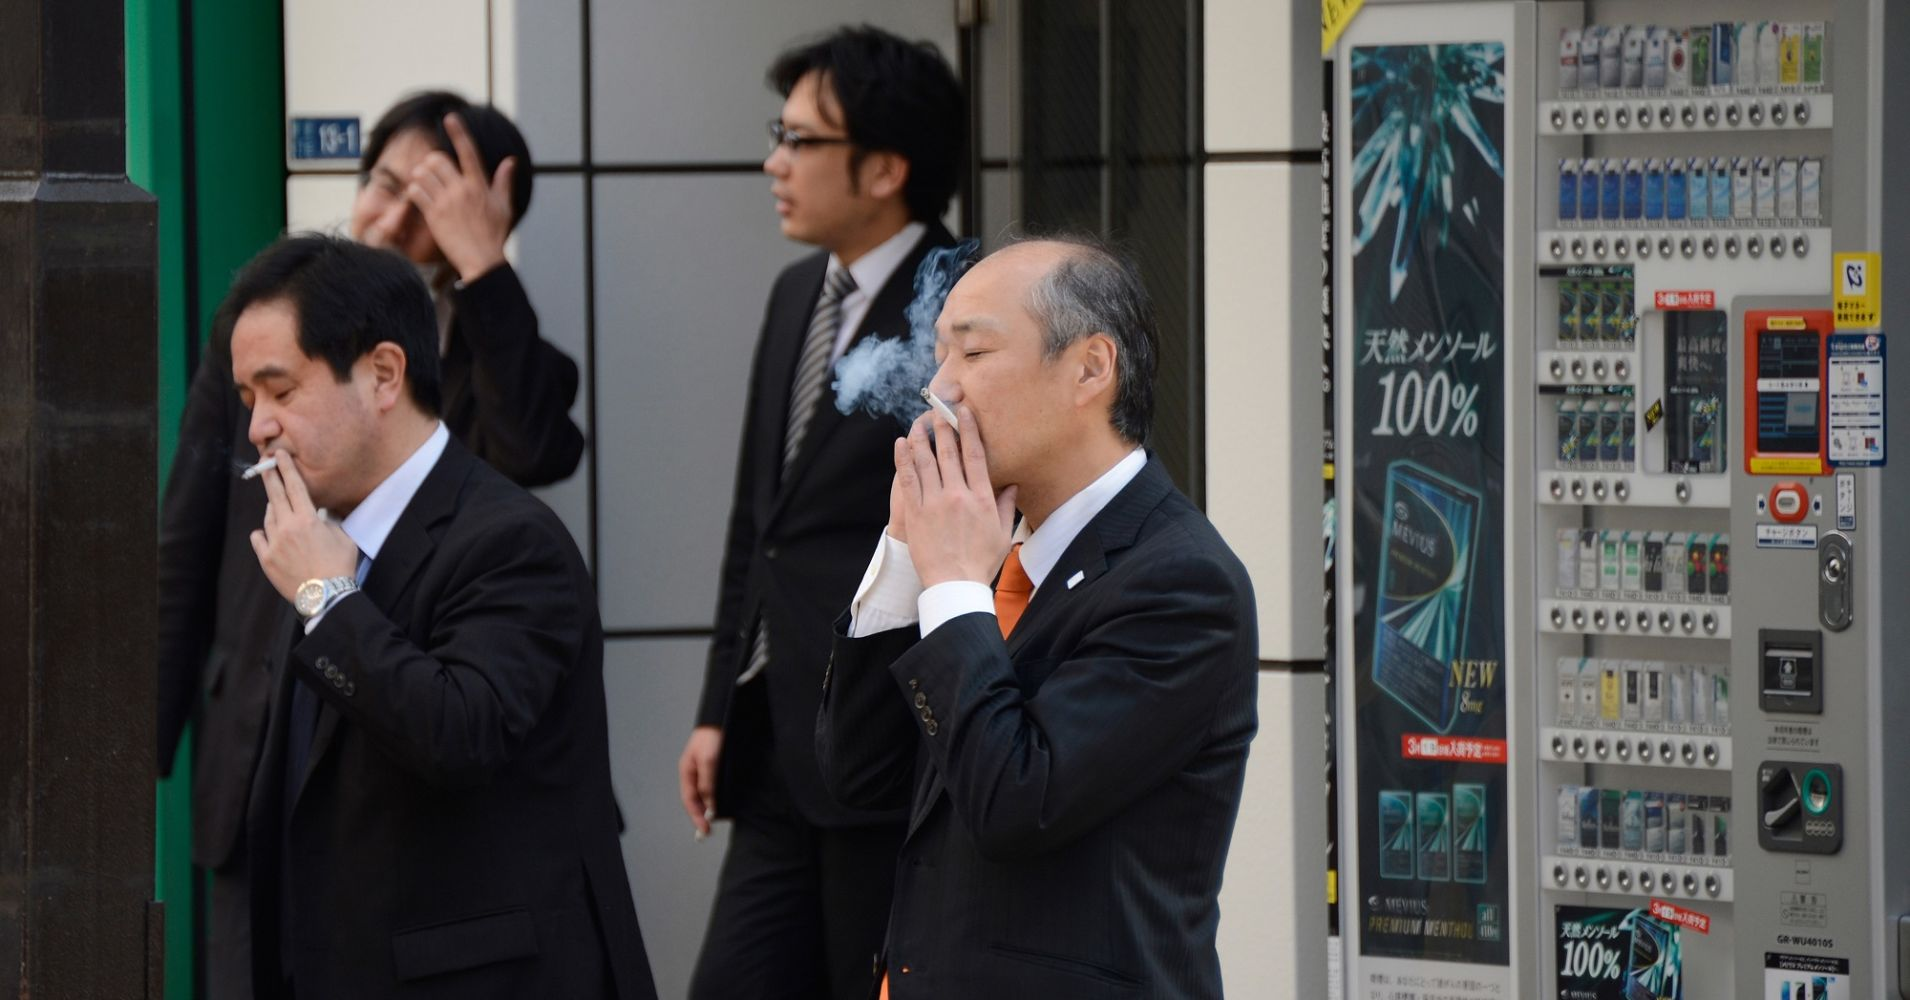 Japan to fine $ 2,700 for smoking at public venues